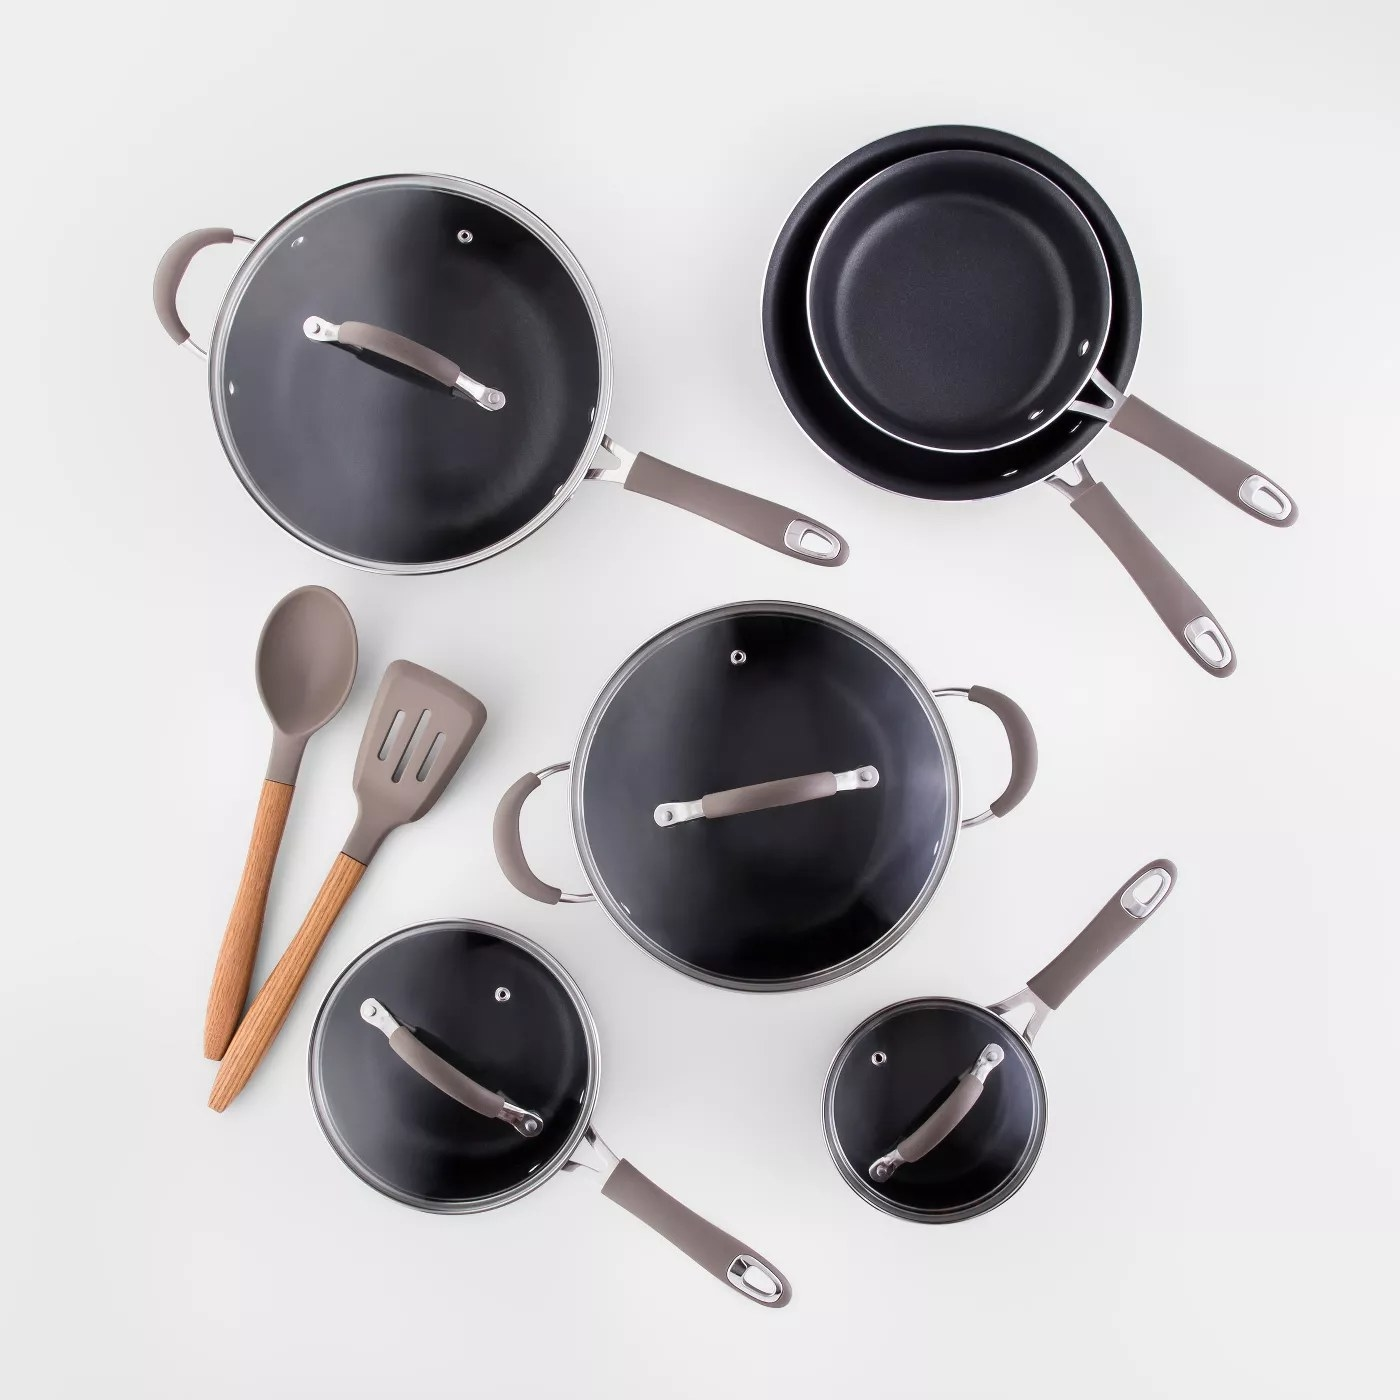 The complete cookware set in gray